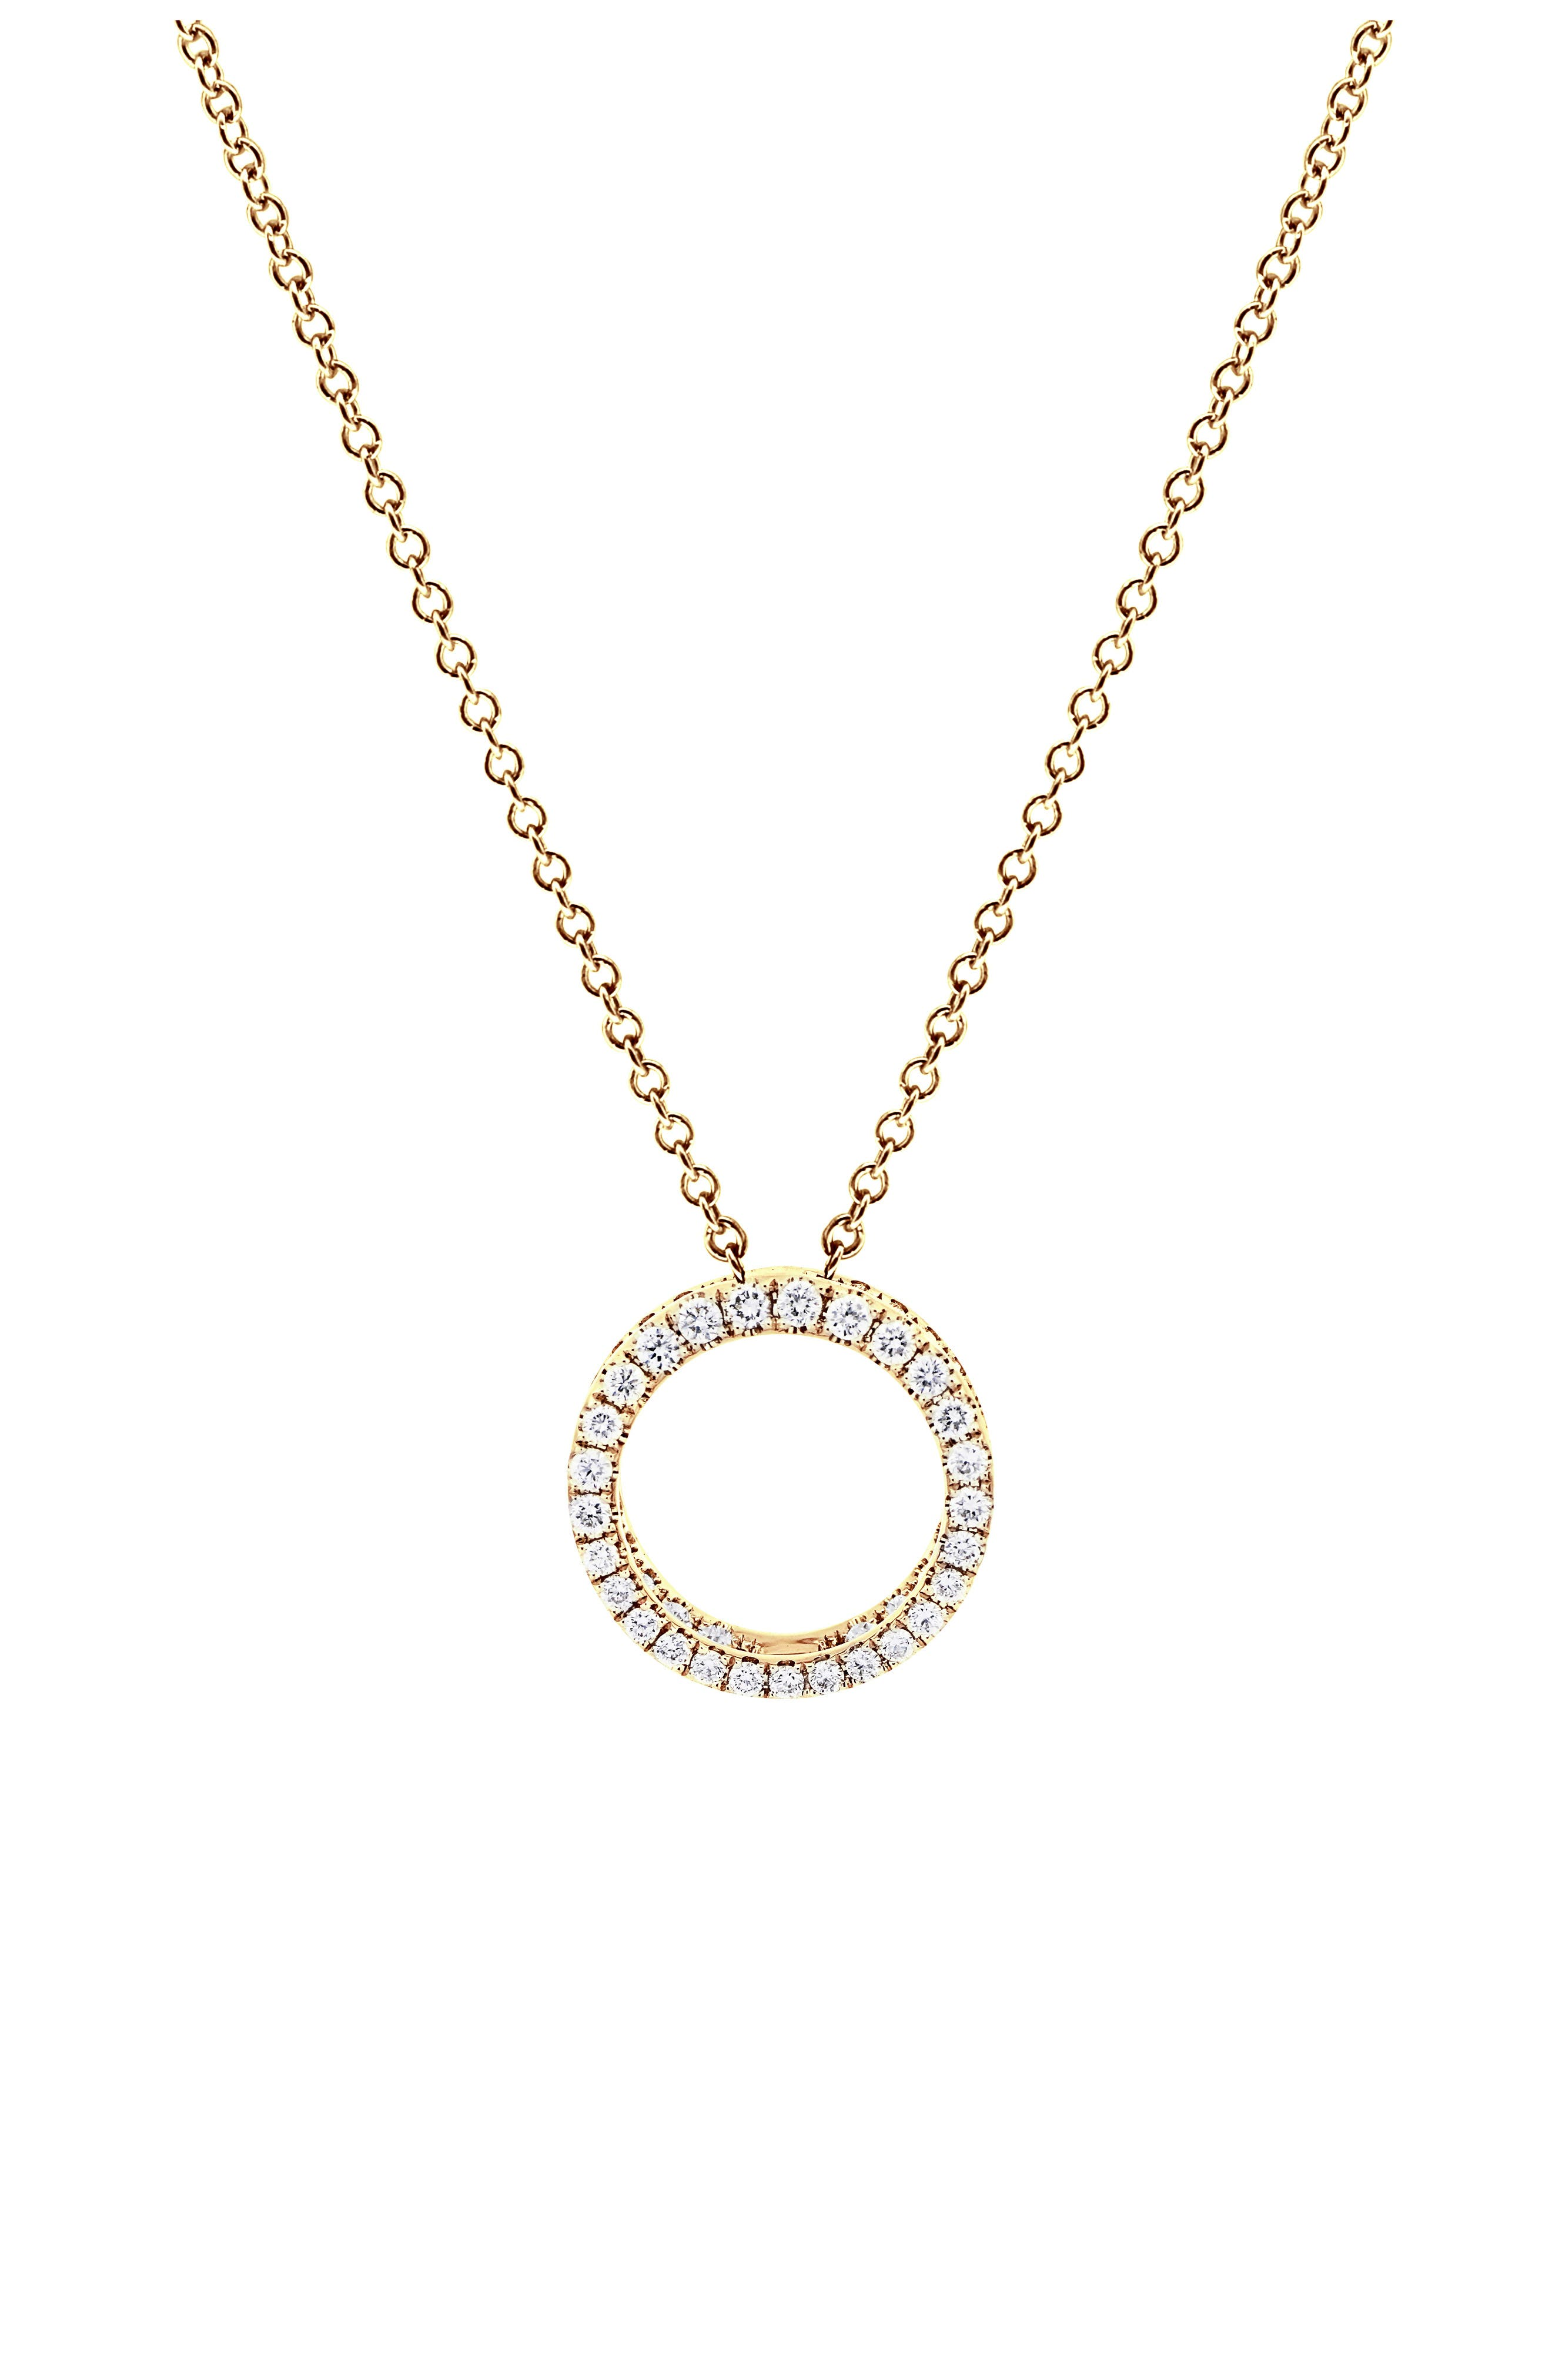 Split circles traced with round pave diamonds offer three dimensions of breathtaking sparkle in this glamorous, handcrafted necklace of 18-karat gold. Style Name: Bony Levy Bardot Medium 3D Circle Pendant Necklace (Nordstrom Exclusive). Style Number: 6063875. Available in stores.